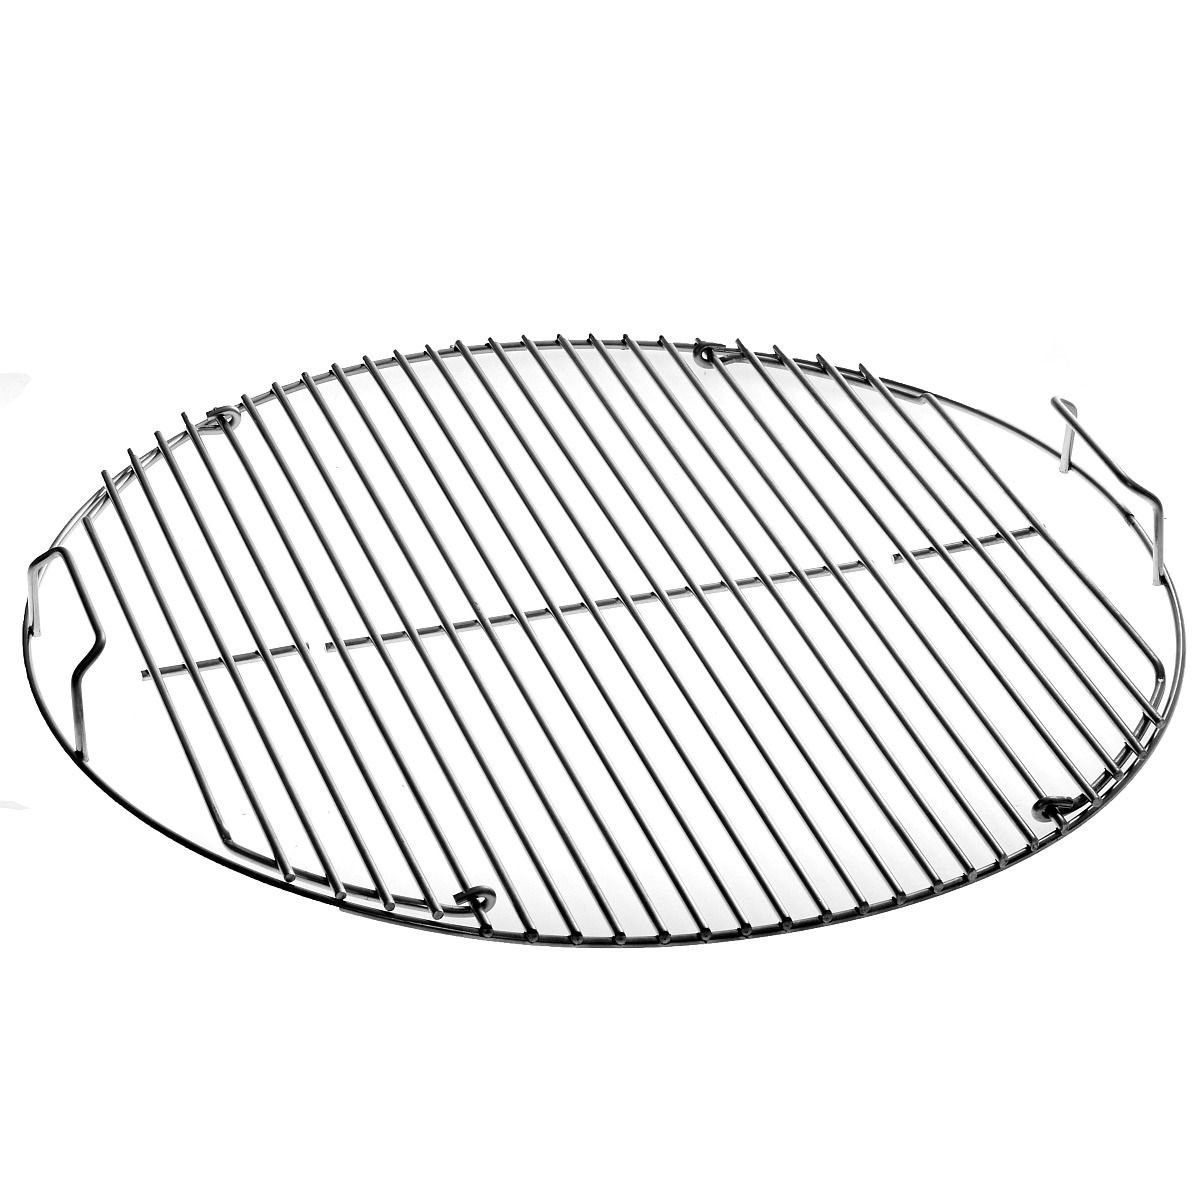 "HINGED COOKING GRATE FOR 18.5"" CHARCOAL GRILLS"